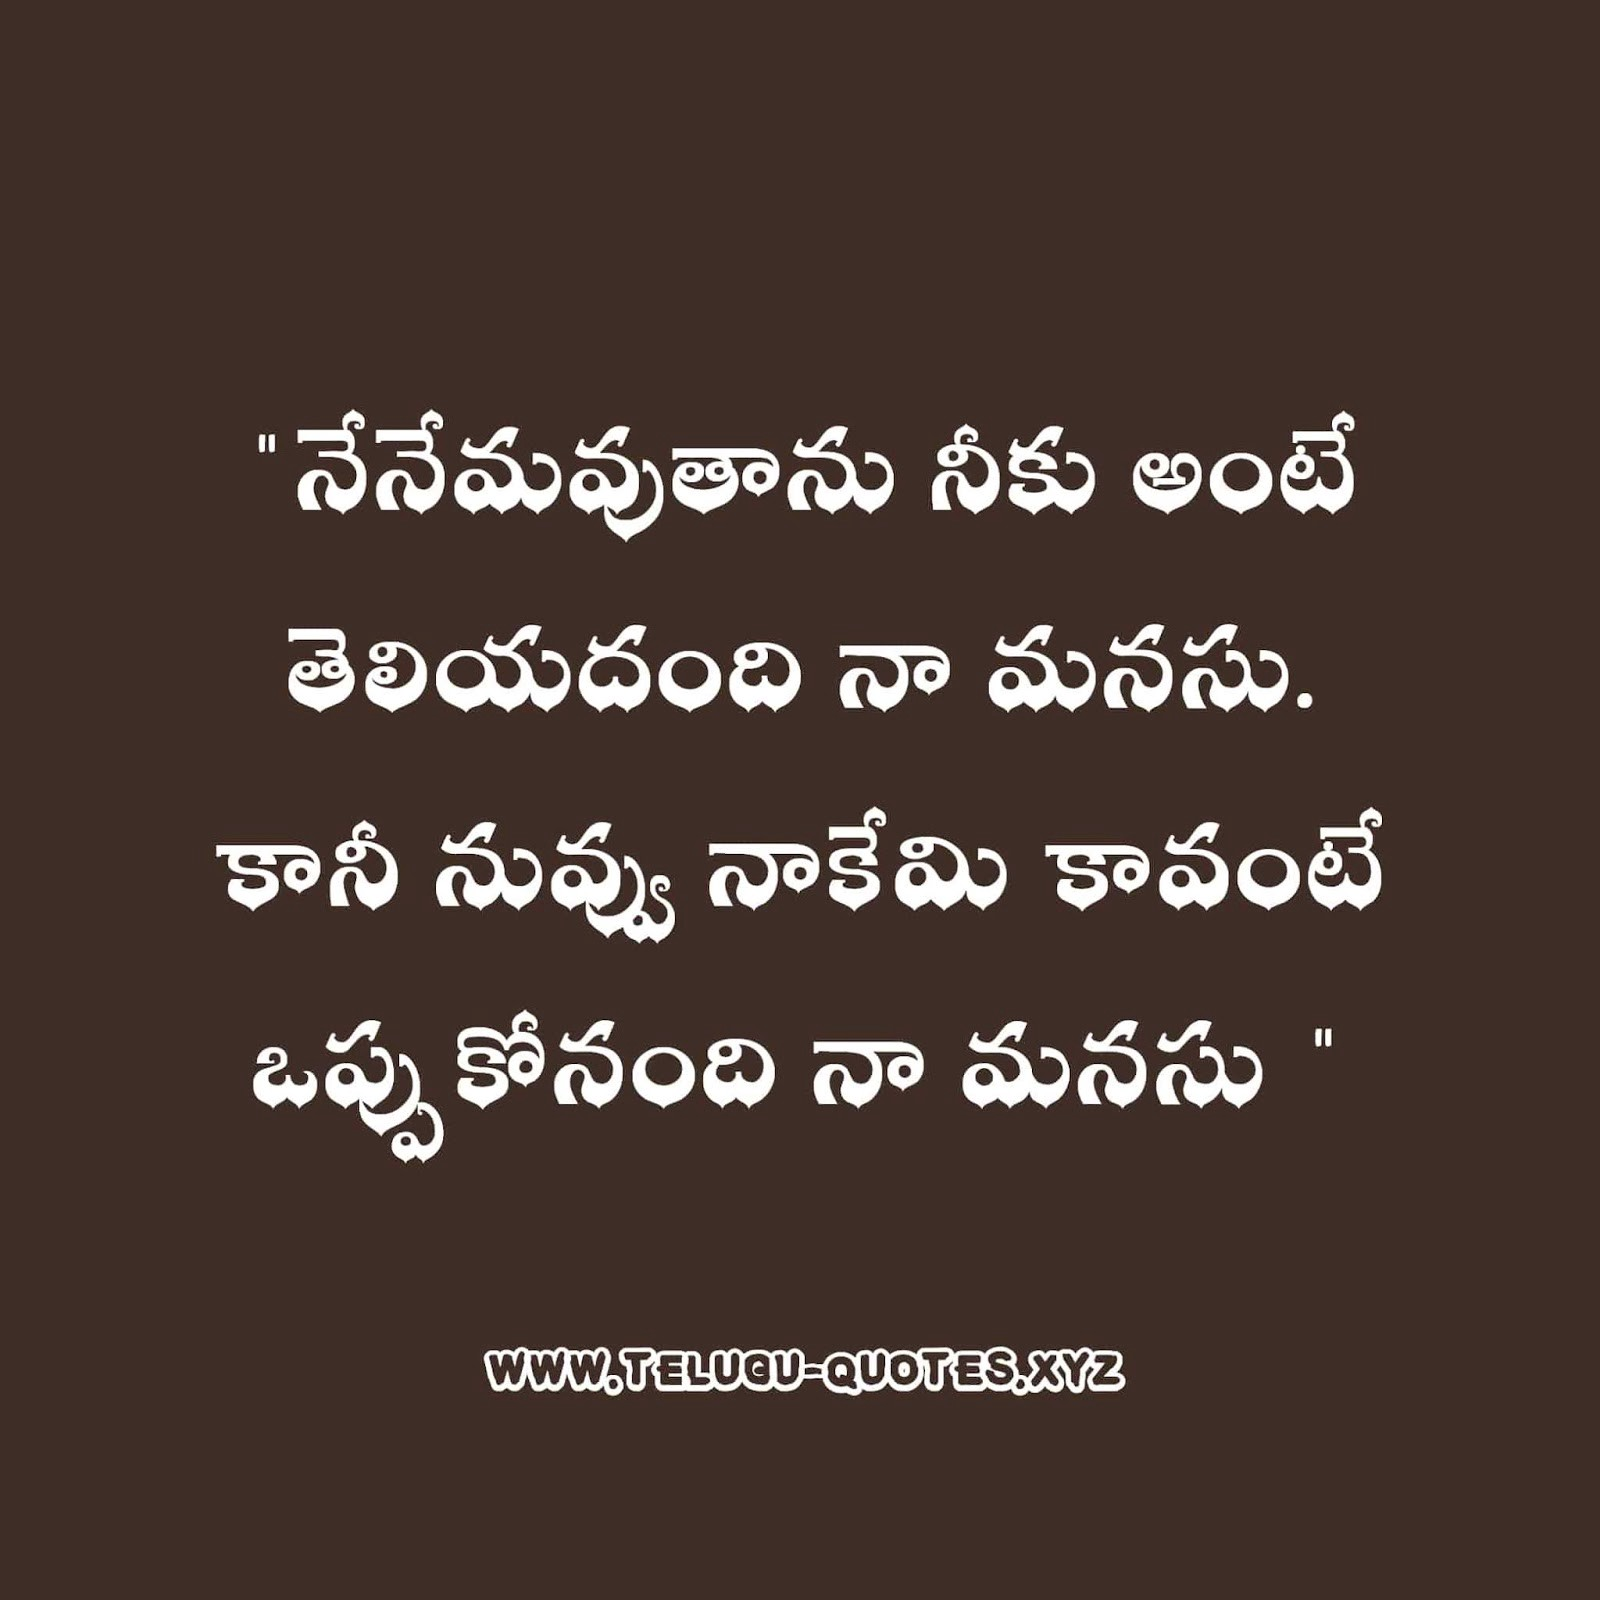 Best Love Quotes In Telugu 2020 Latest Love Quotes Images Download By Telugu Lyrics Medium